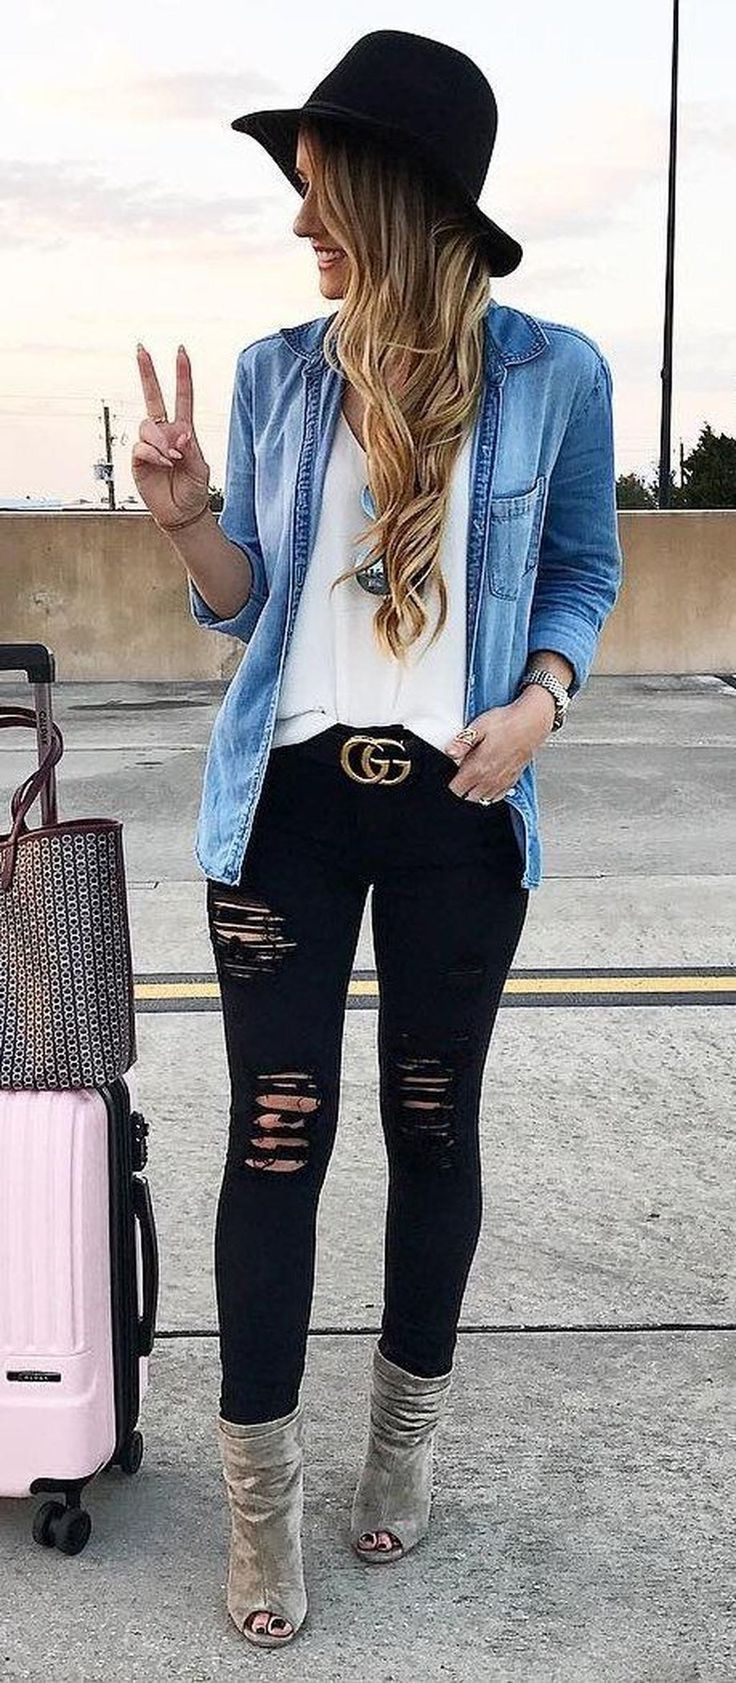 best 25+ cool outfits ideas on pinterest | outfits, shoes cool and